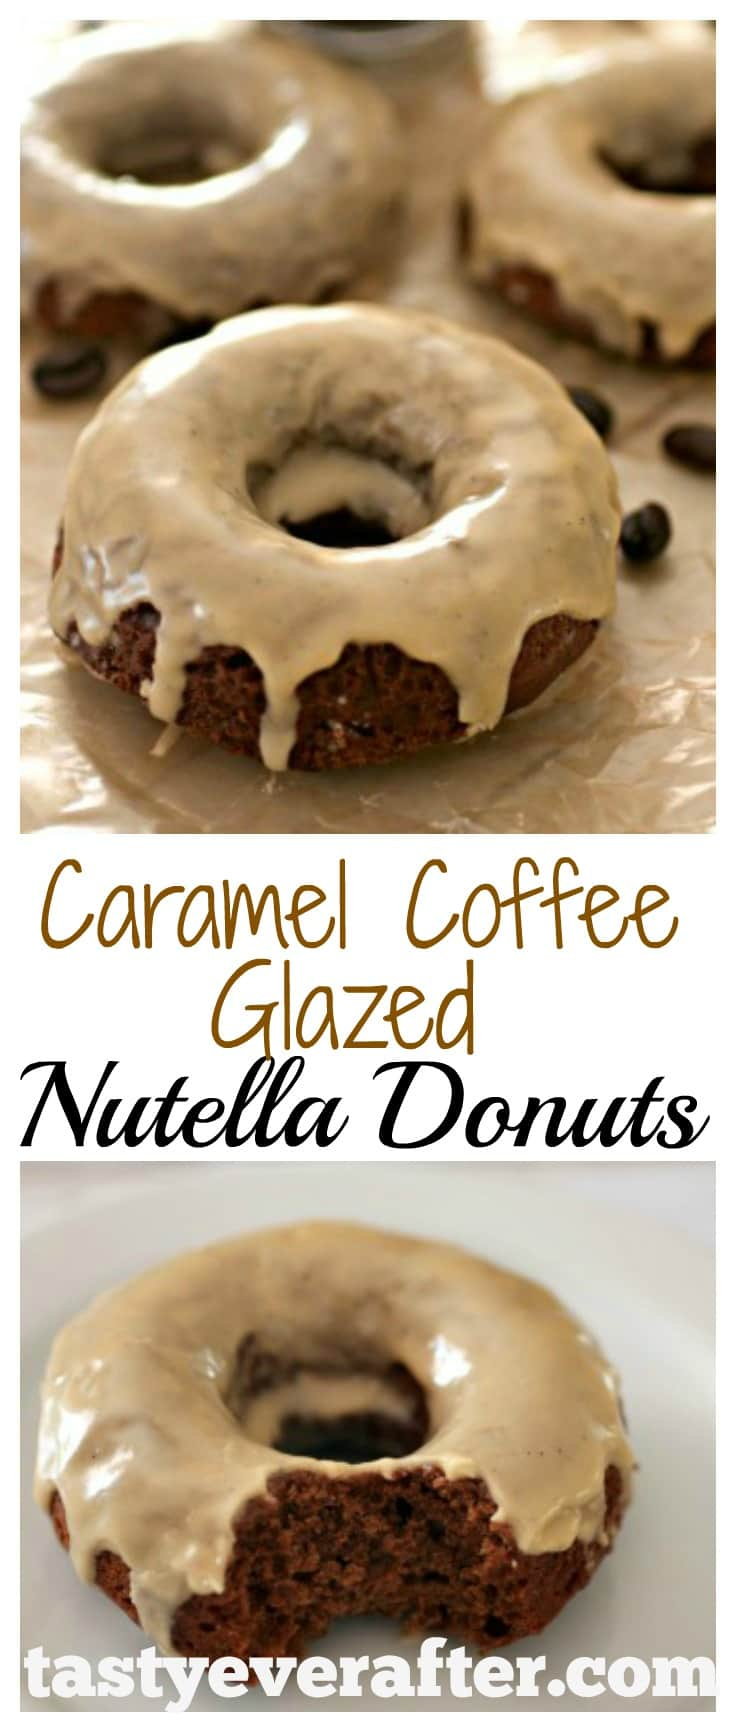 Caramel Coffee Glazed Nutella Donuts